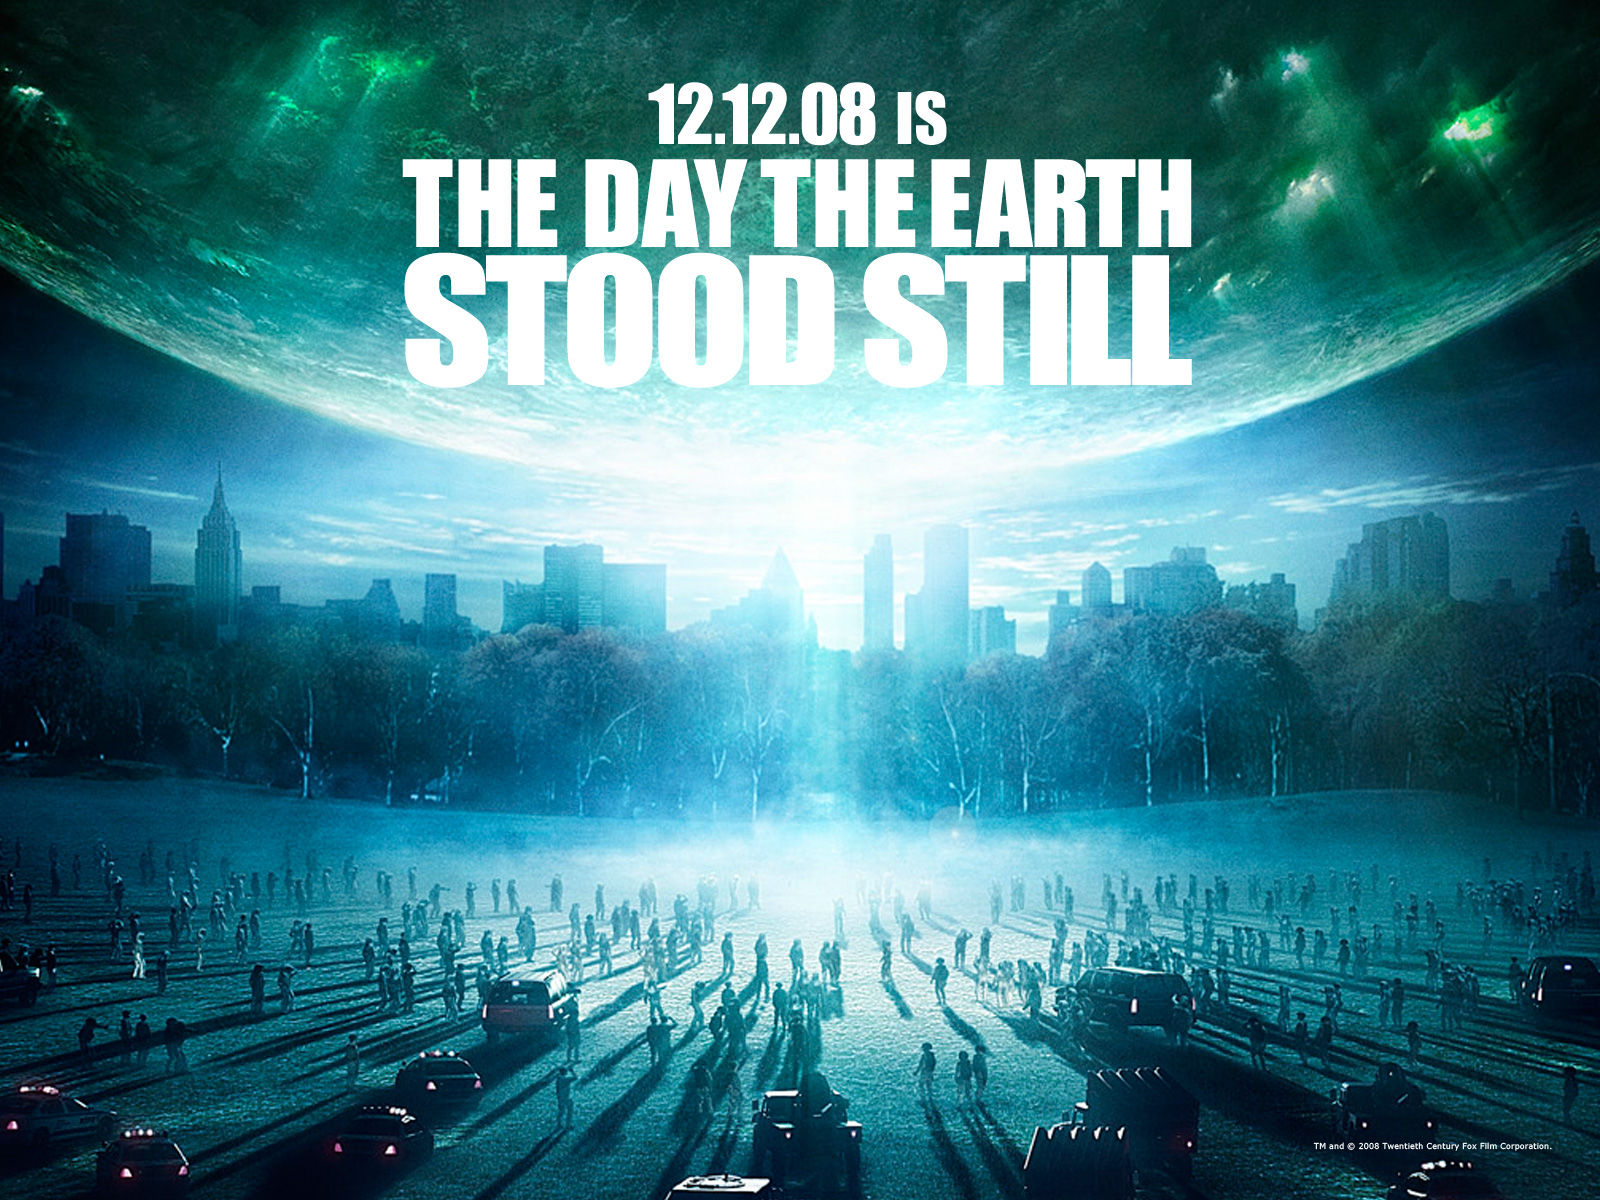 The Day the Earth Stood Still Wallpaper   Original size download now 1600x1200